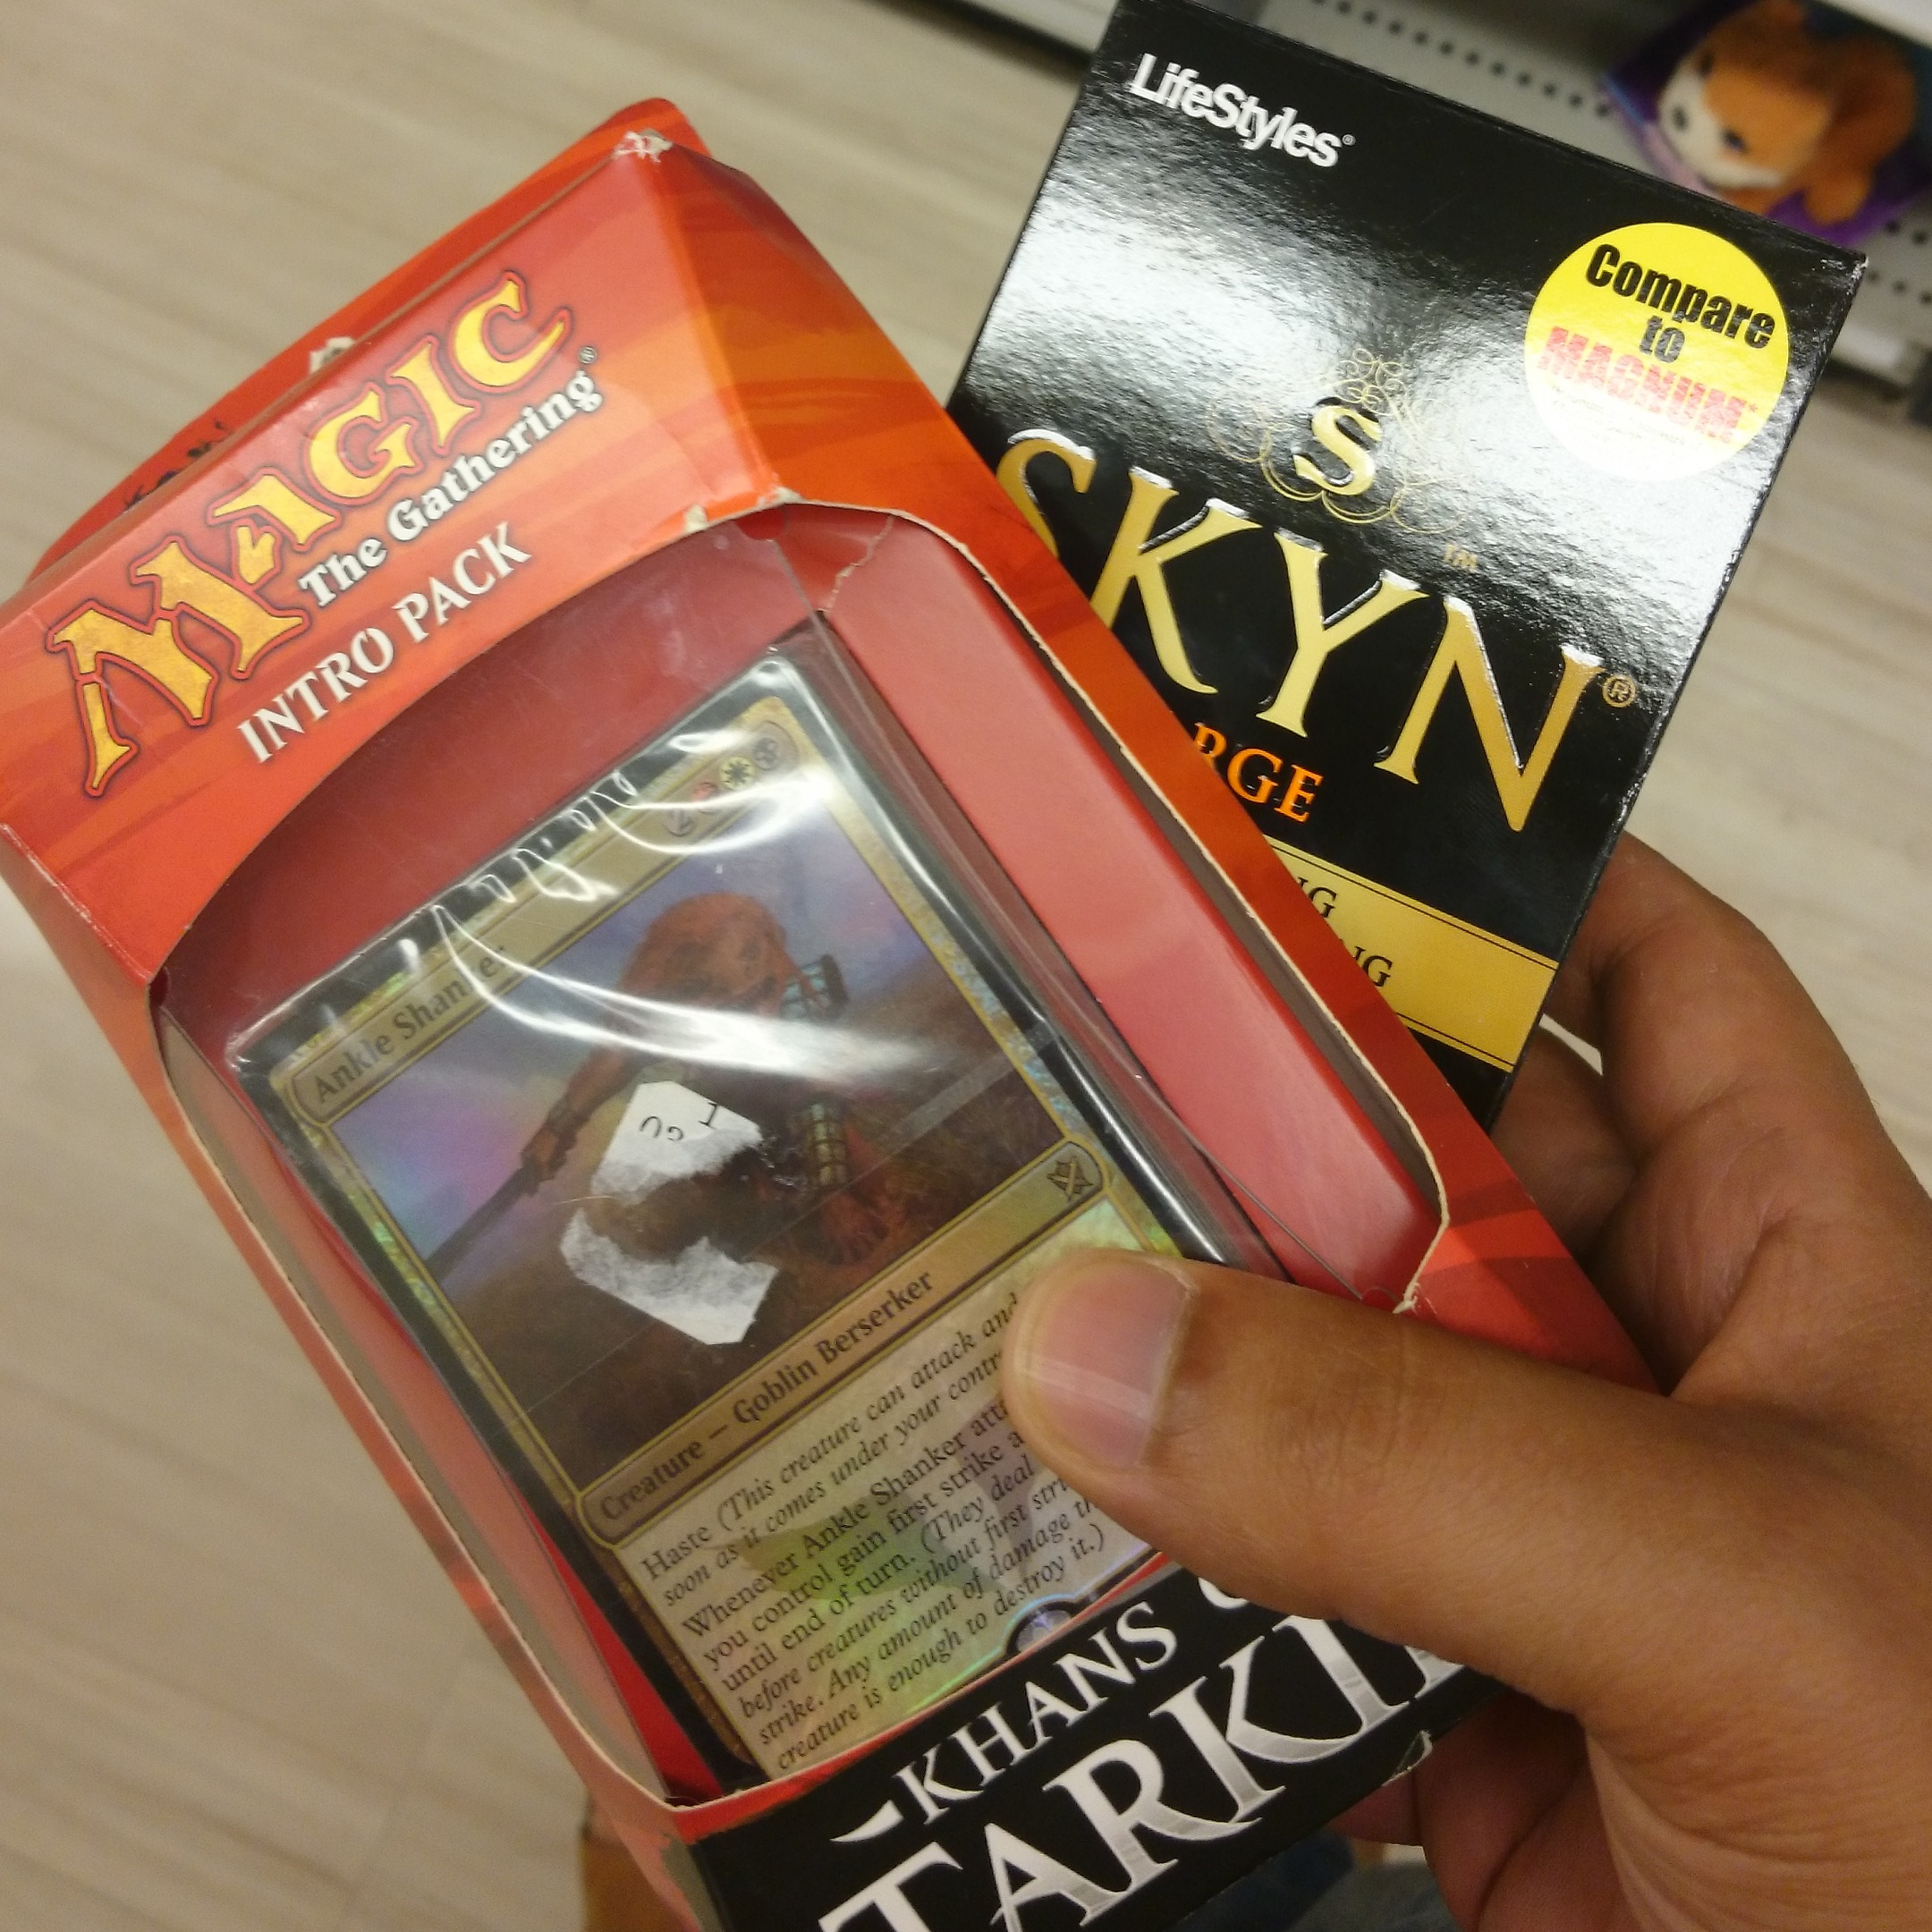 How to totally confuse the cashier. Magic: The Gathering intro pack and condoms.